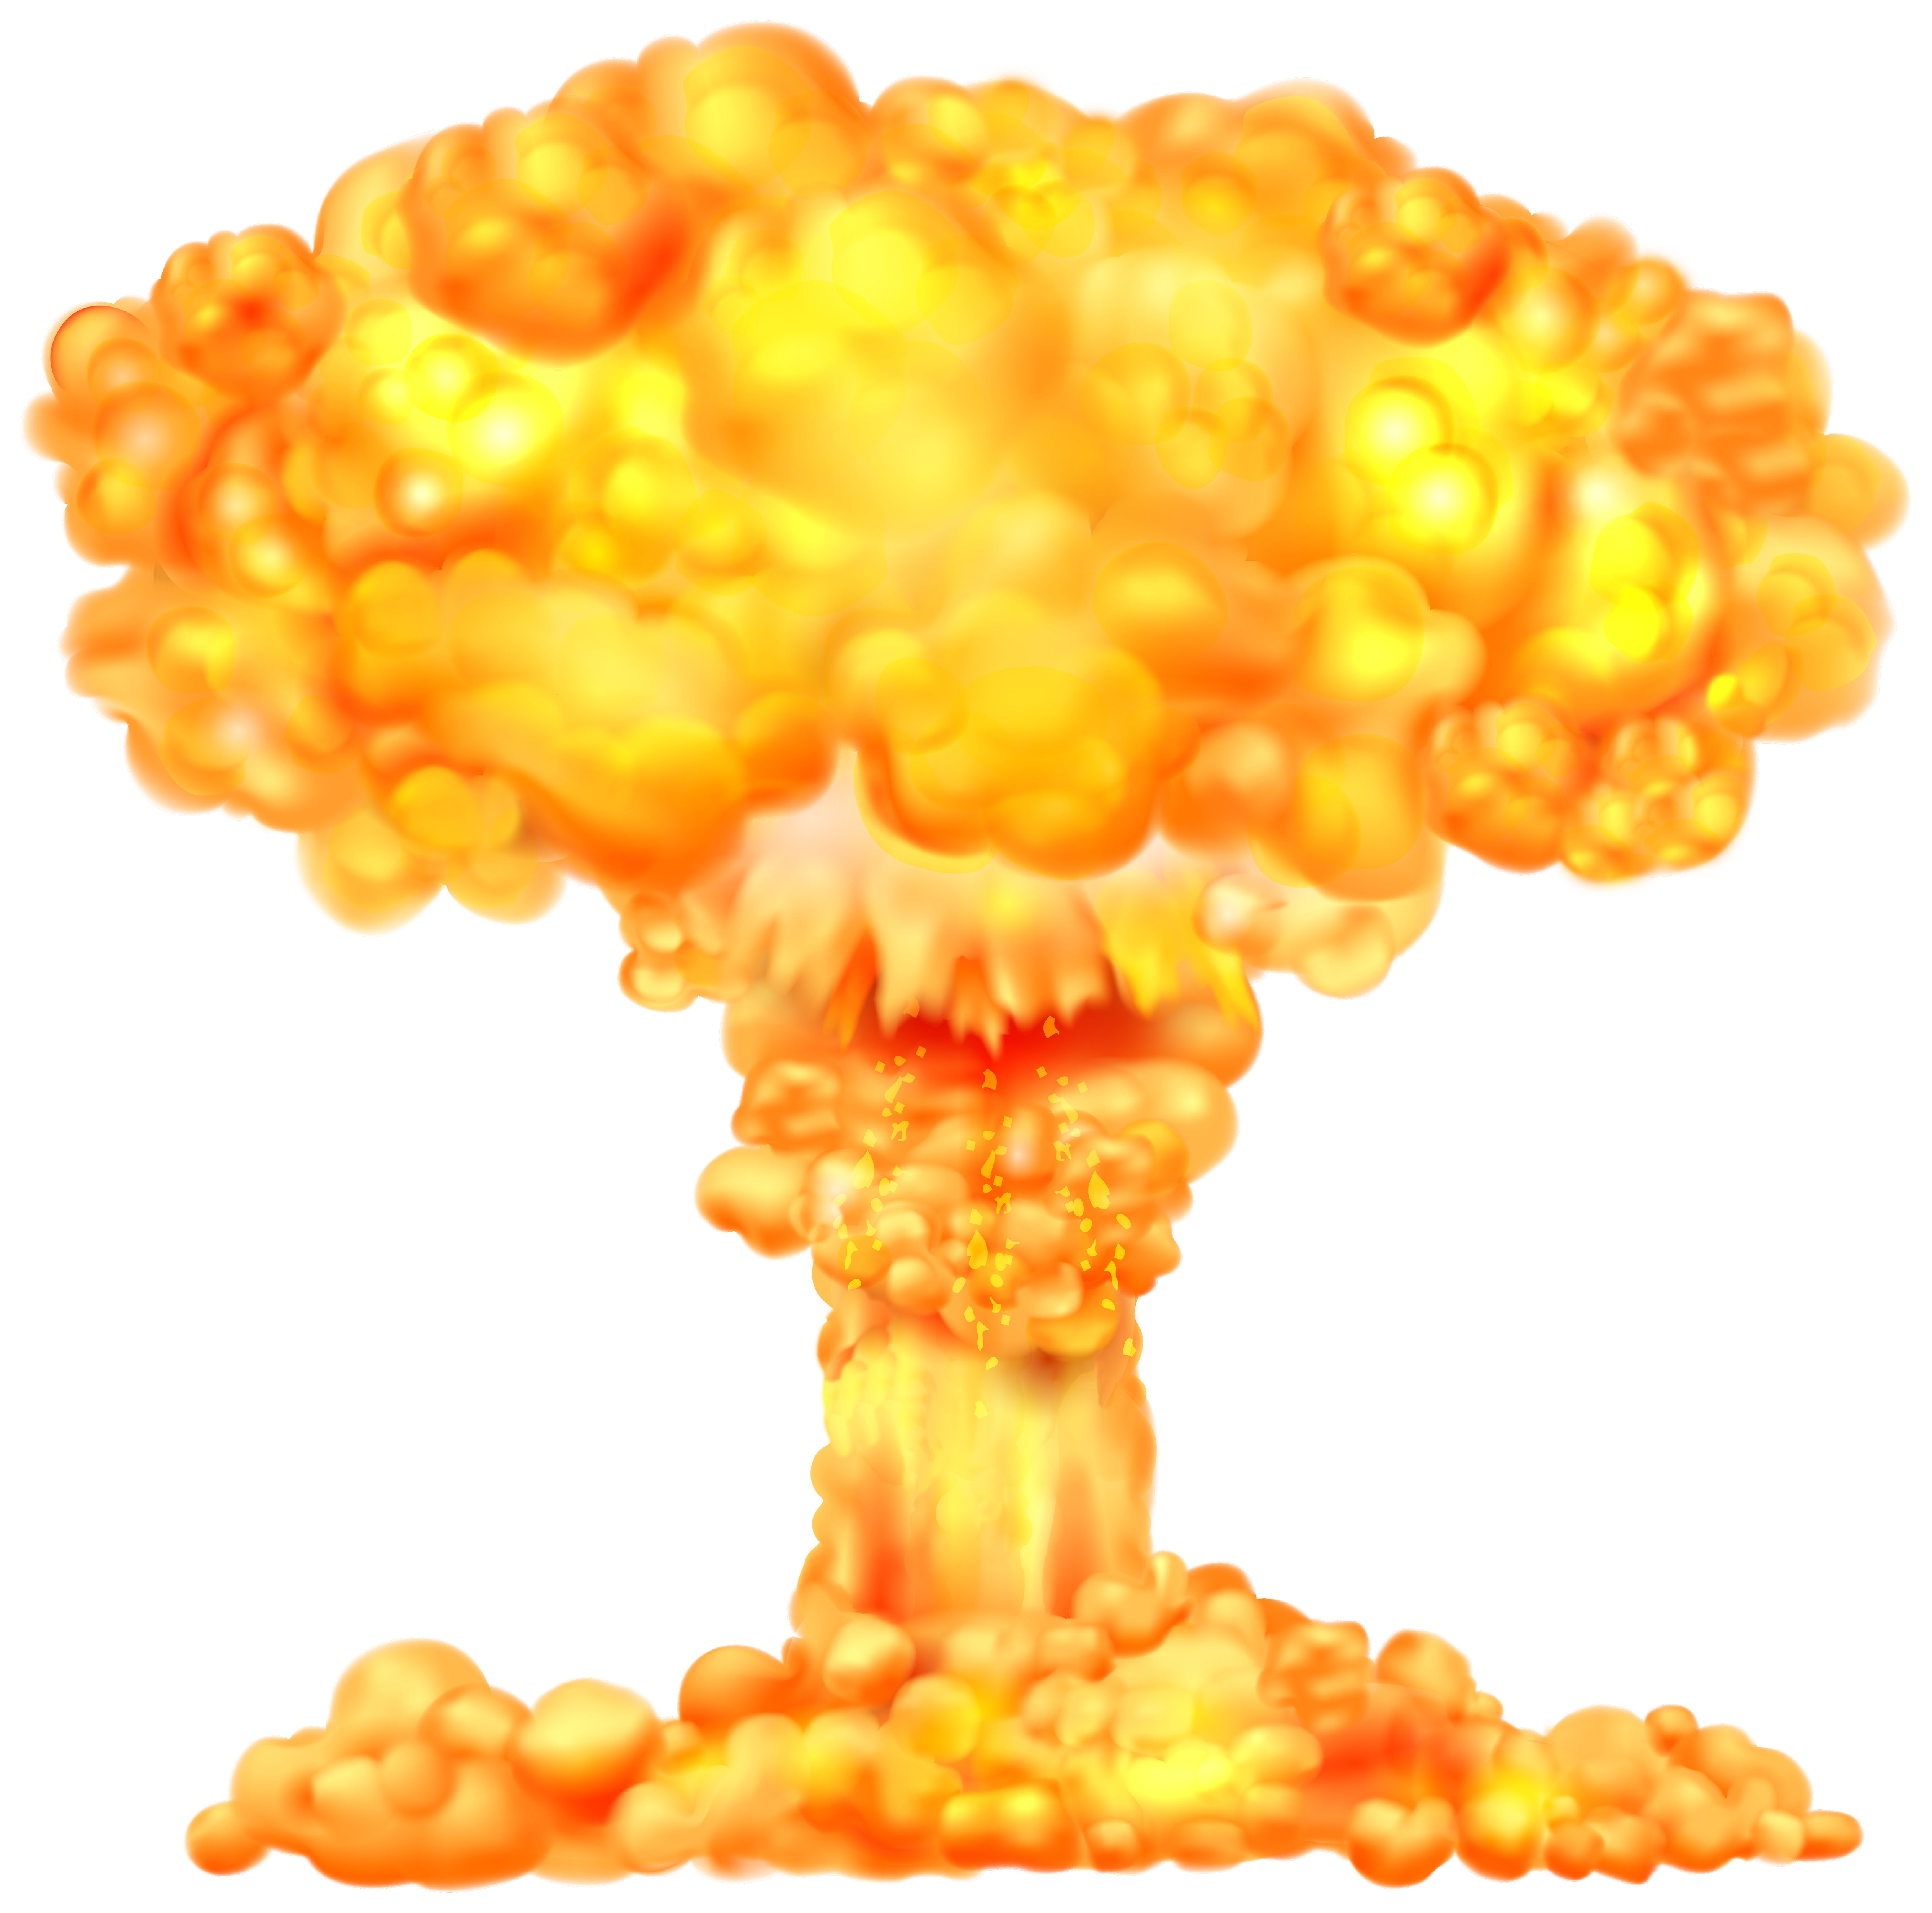 Fire Explosion Transparent PNG Clip Art Image | Gallery ... graphic black and white stock